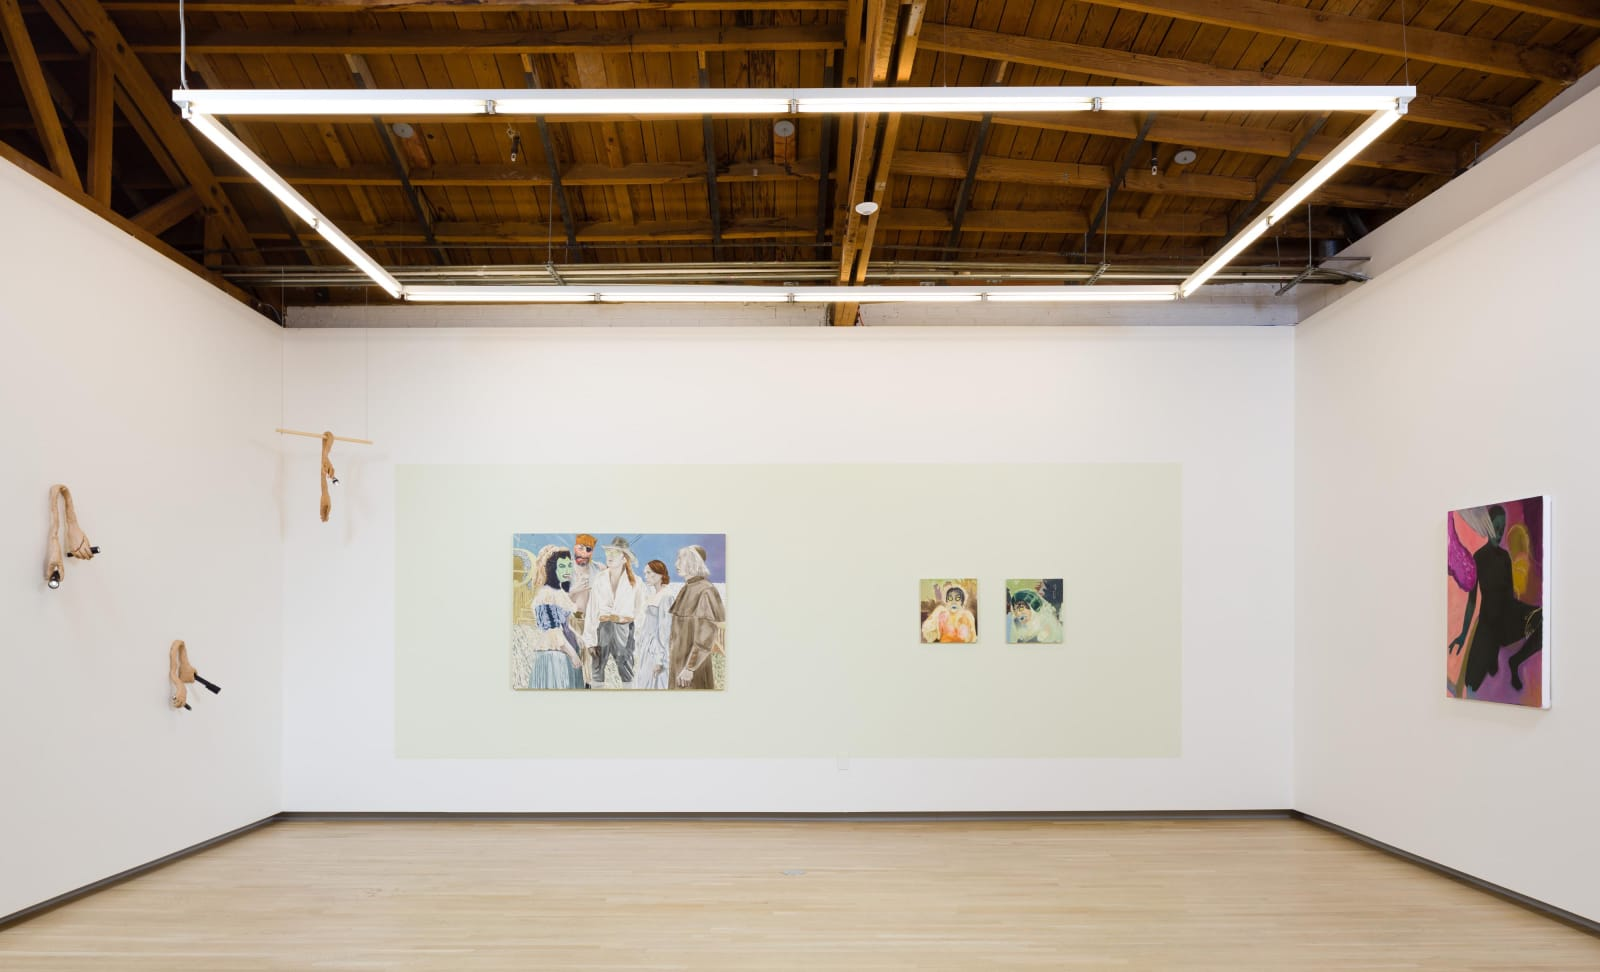 Roni Schneior, Katie Dorame, and Naudline Pierre in By The Lights of Their Eyes, 2018. Shulamit Nazarian, Los Angeles